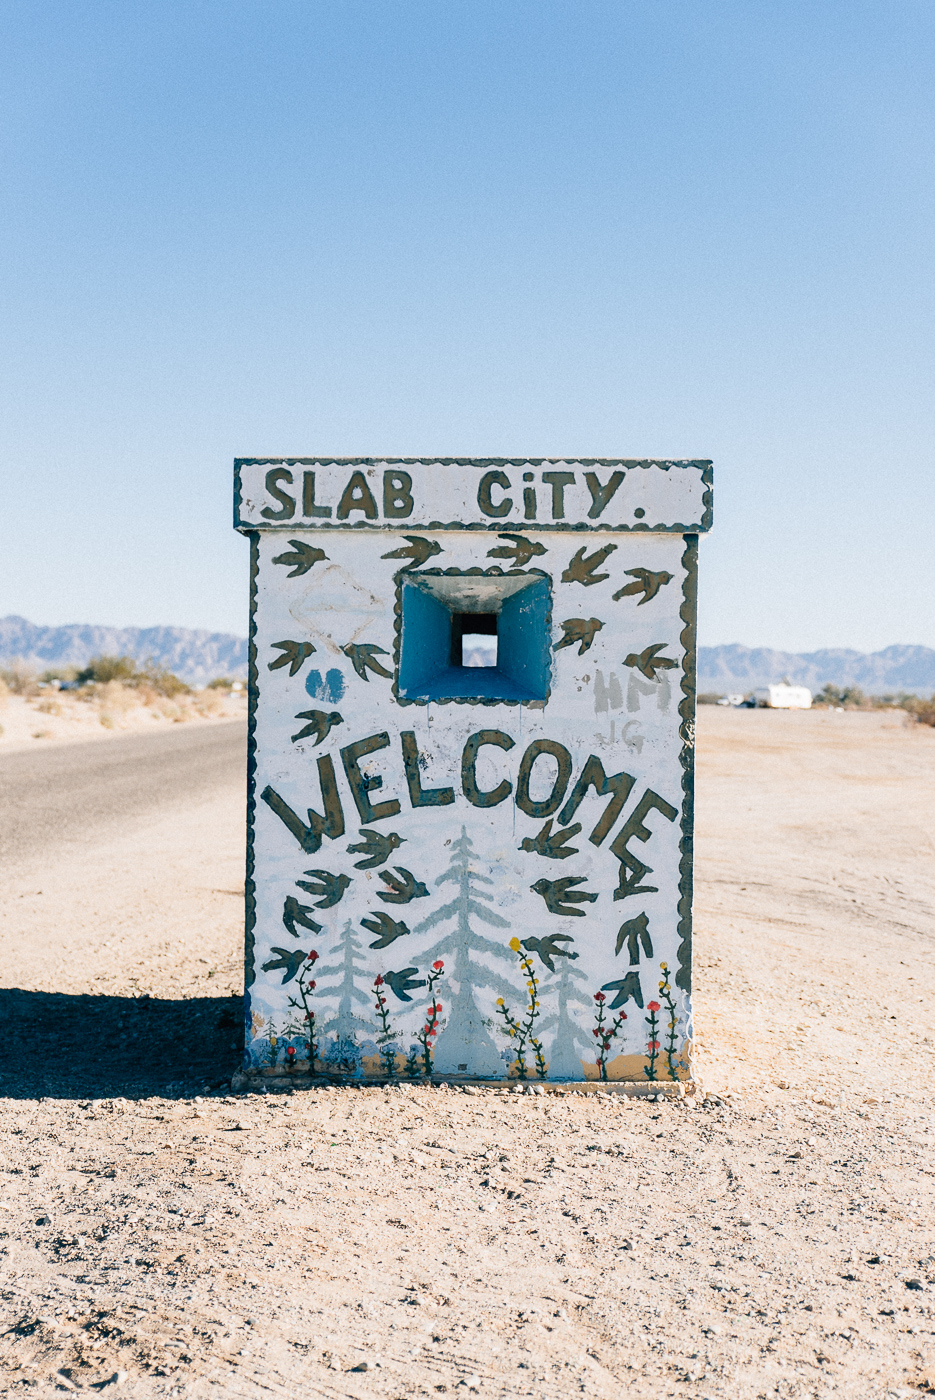 salvation mountain california arizona slab city salton sea vsco nikon america yall pawlowski americayall entrance